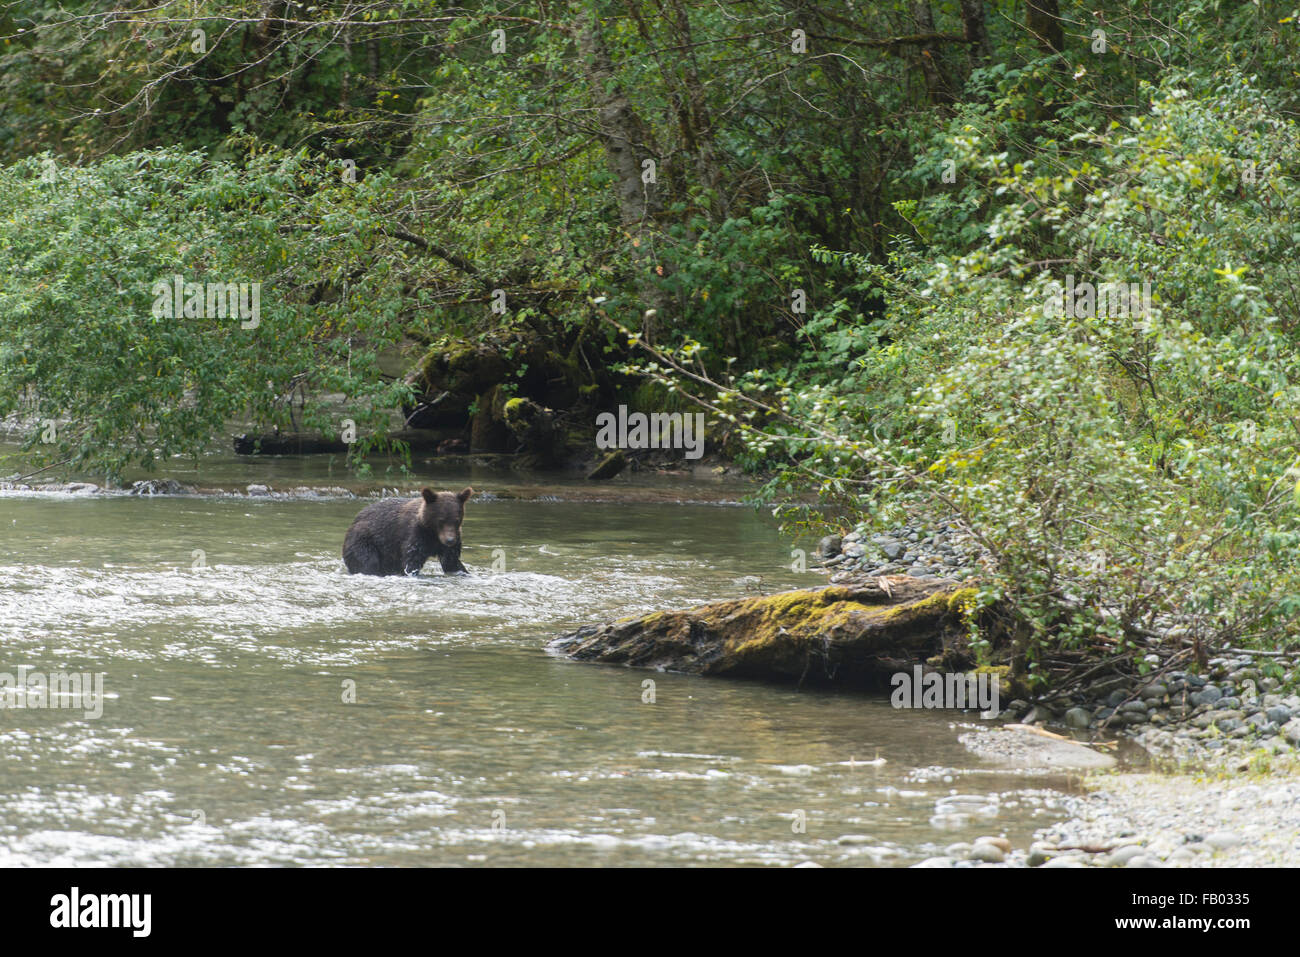 Mainland grizzly (Ursus arctos horribilis) walking in water, Bute Inlet, Vancouver Island, British Columbia, Canada Stock Photo